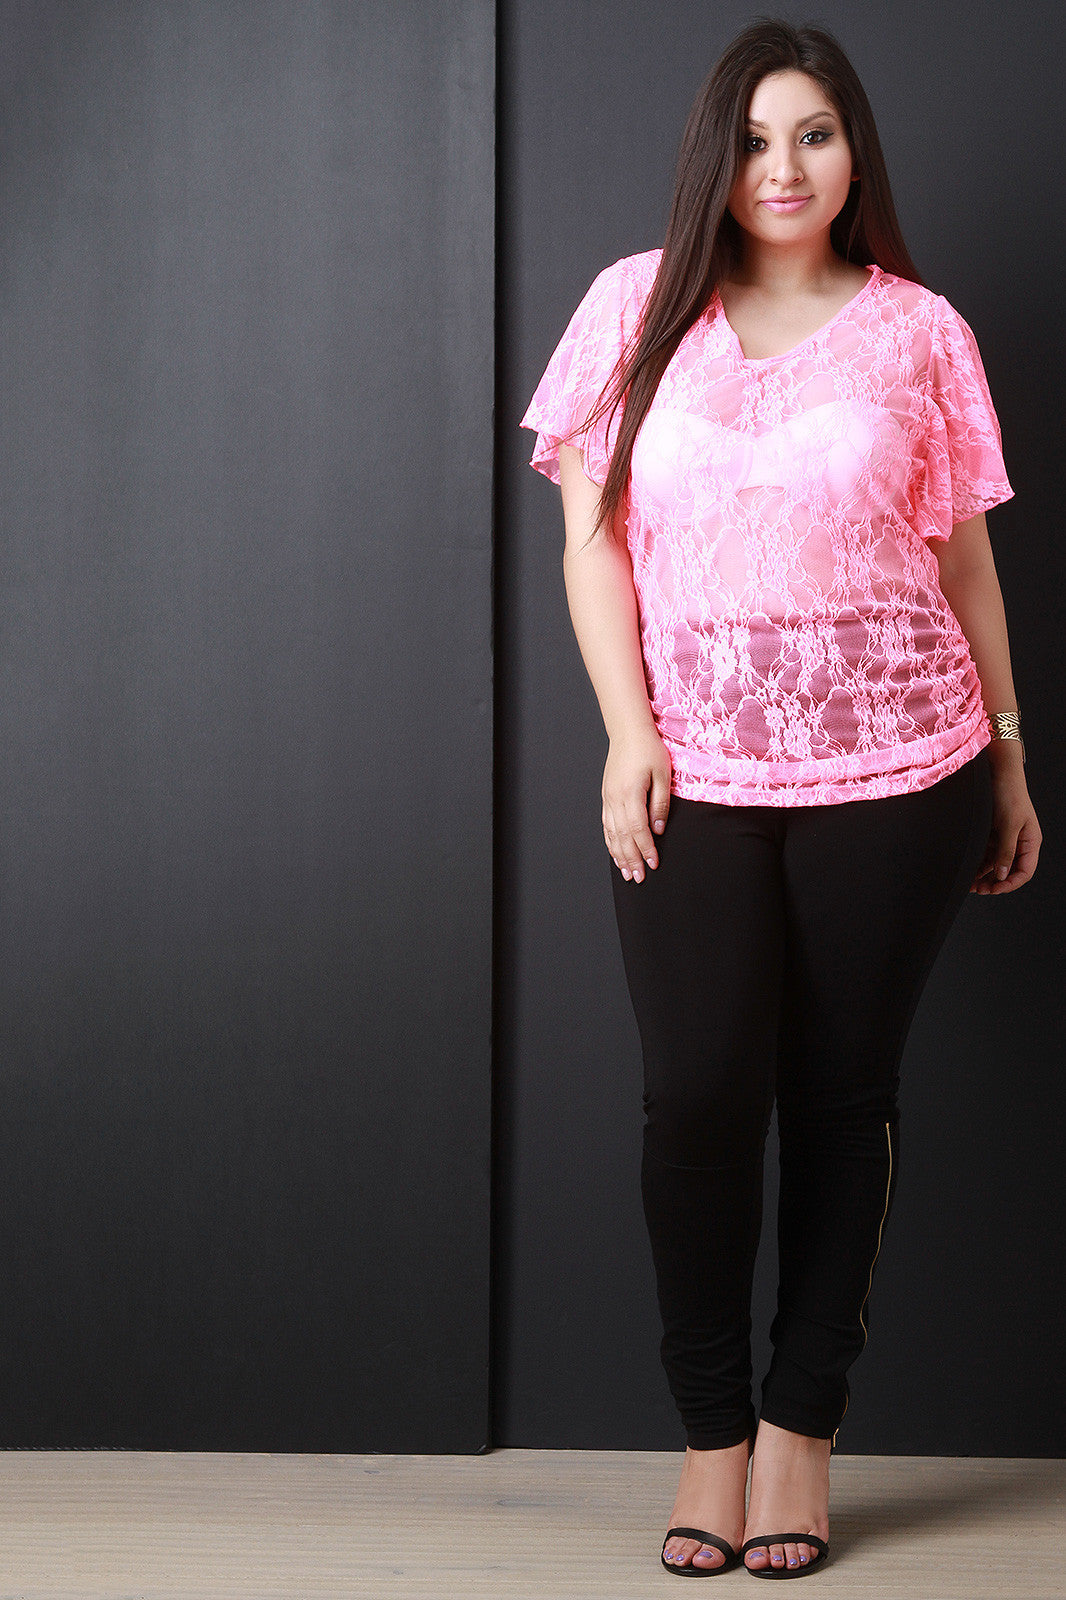 V-neck Floral Lace Pattern Top - Thick 'N' Curvy Shop - 6